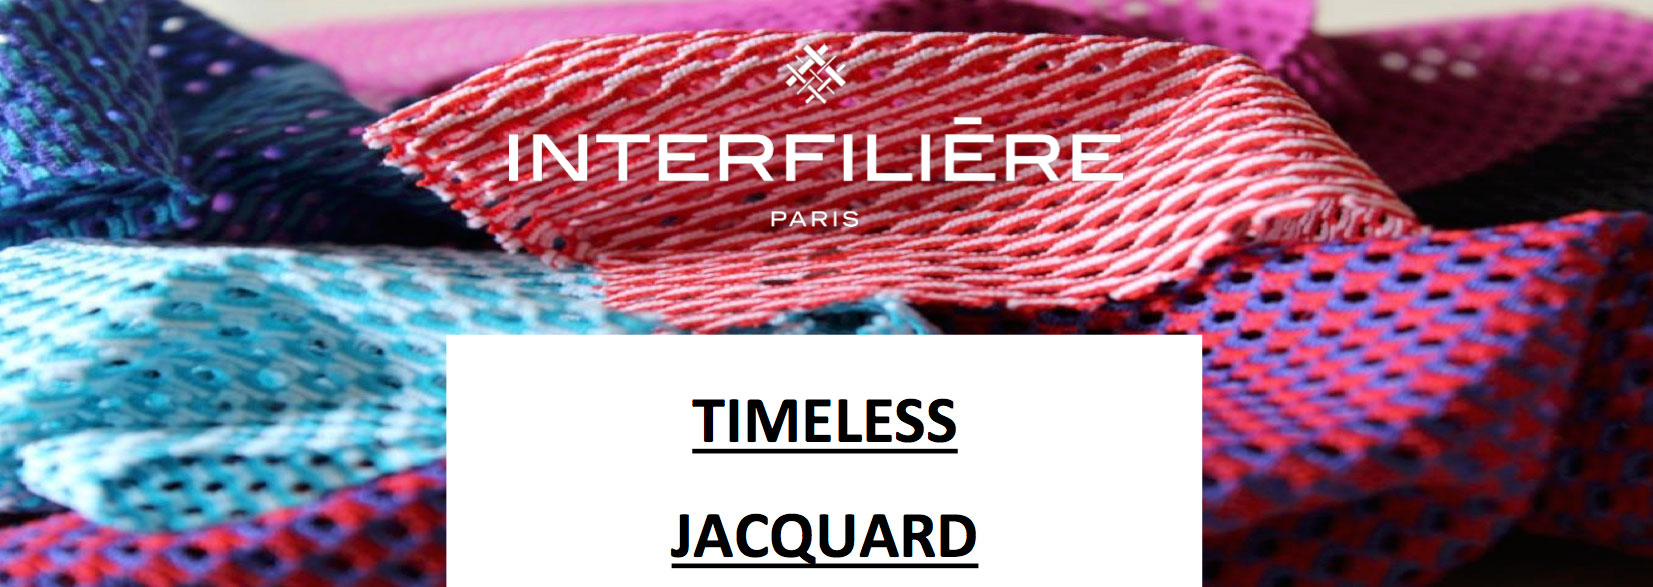 TIMELESS-JACQUARD-INTERFILIERE-PARIS